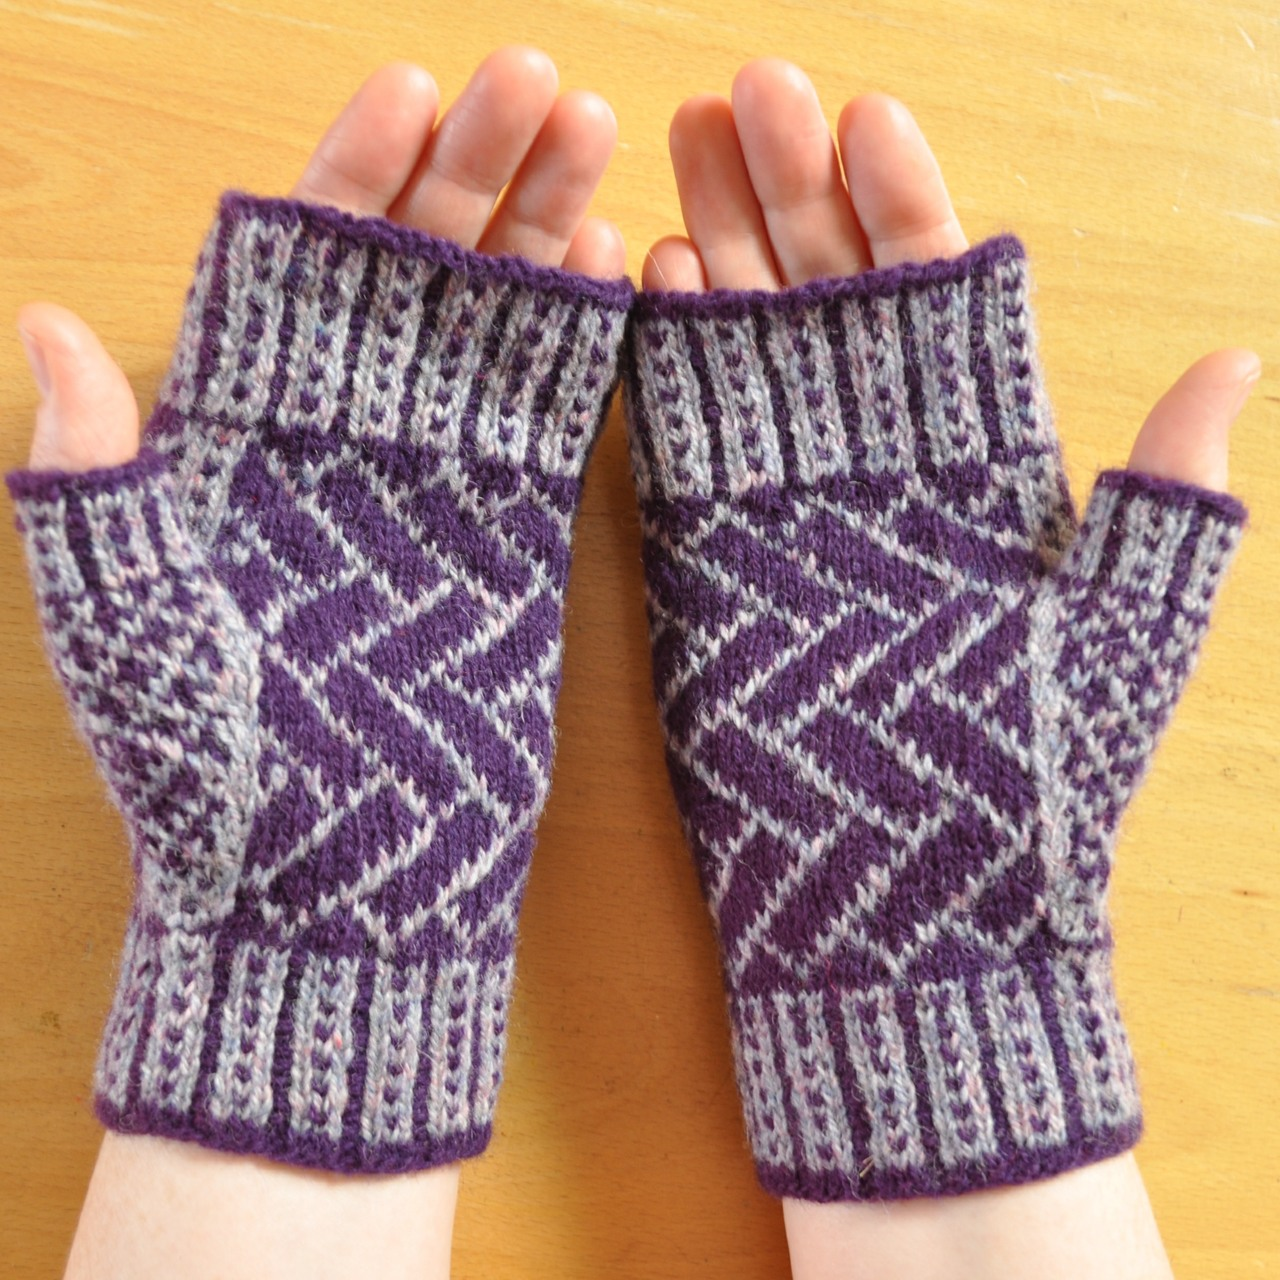 Brickazag Mitts pattern